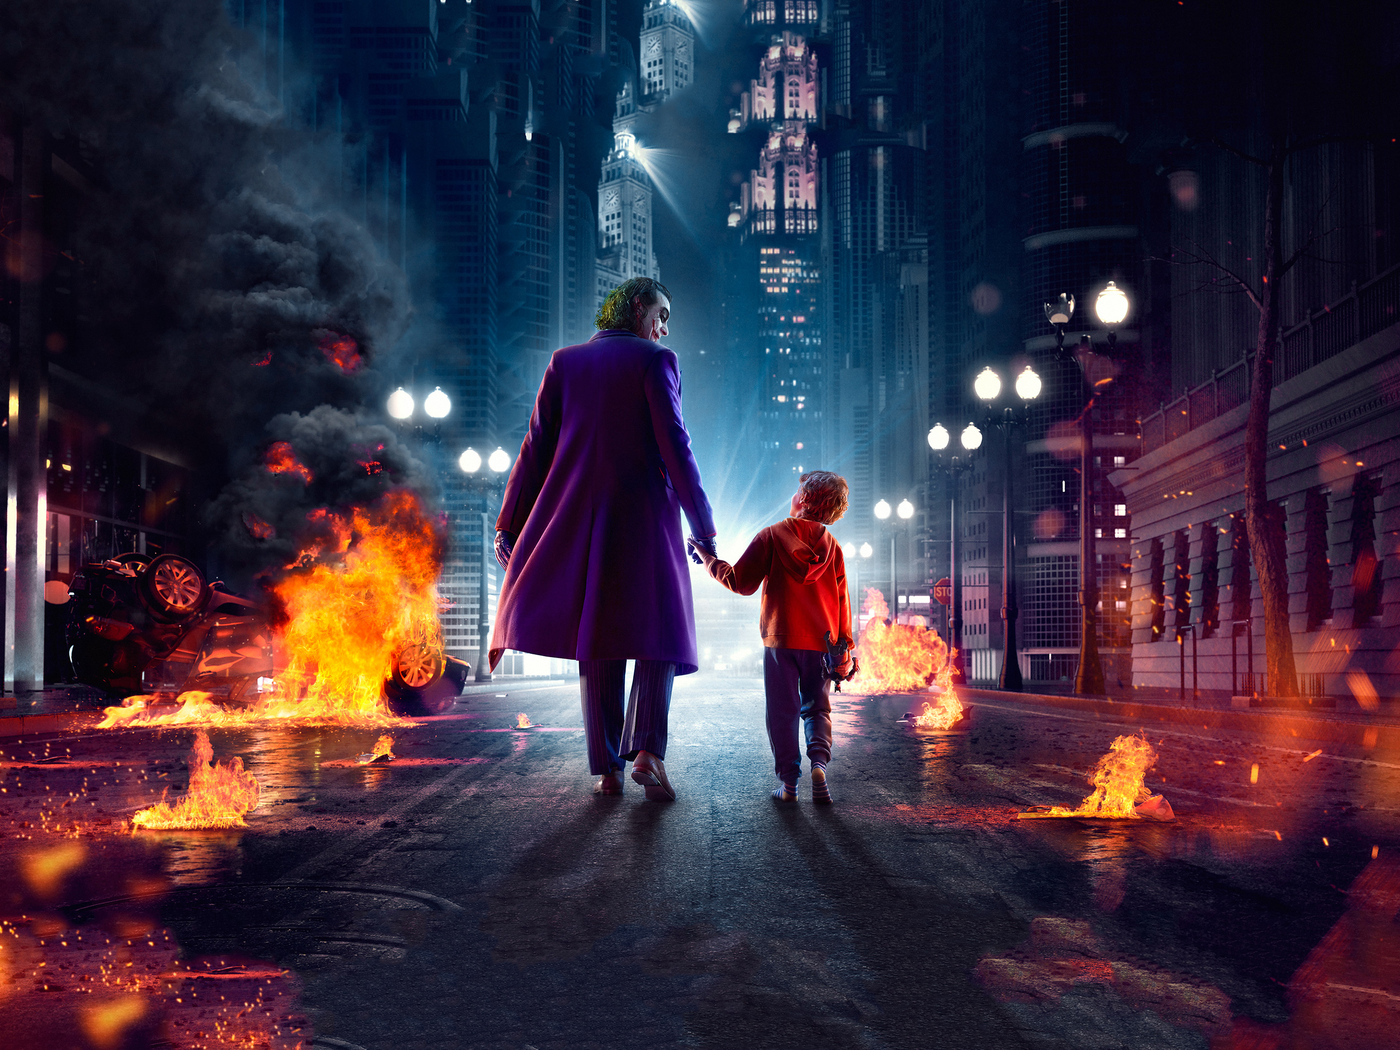 joker-walking-with-kid-cv.jpg